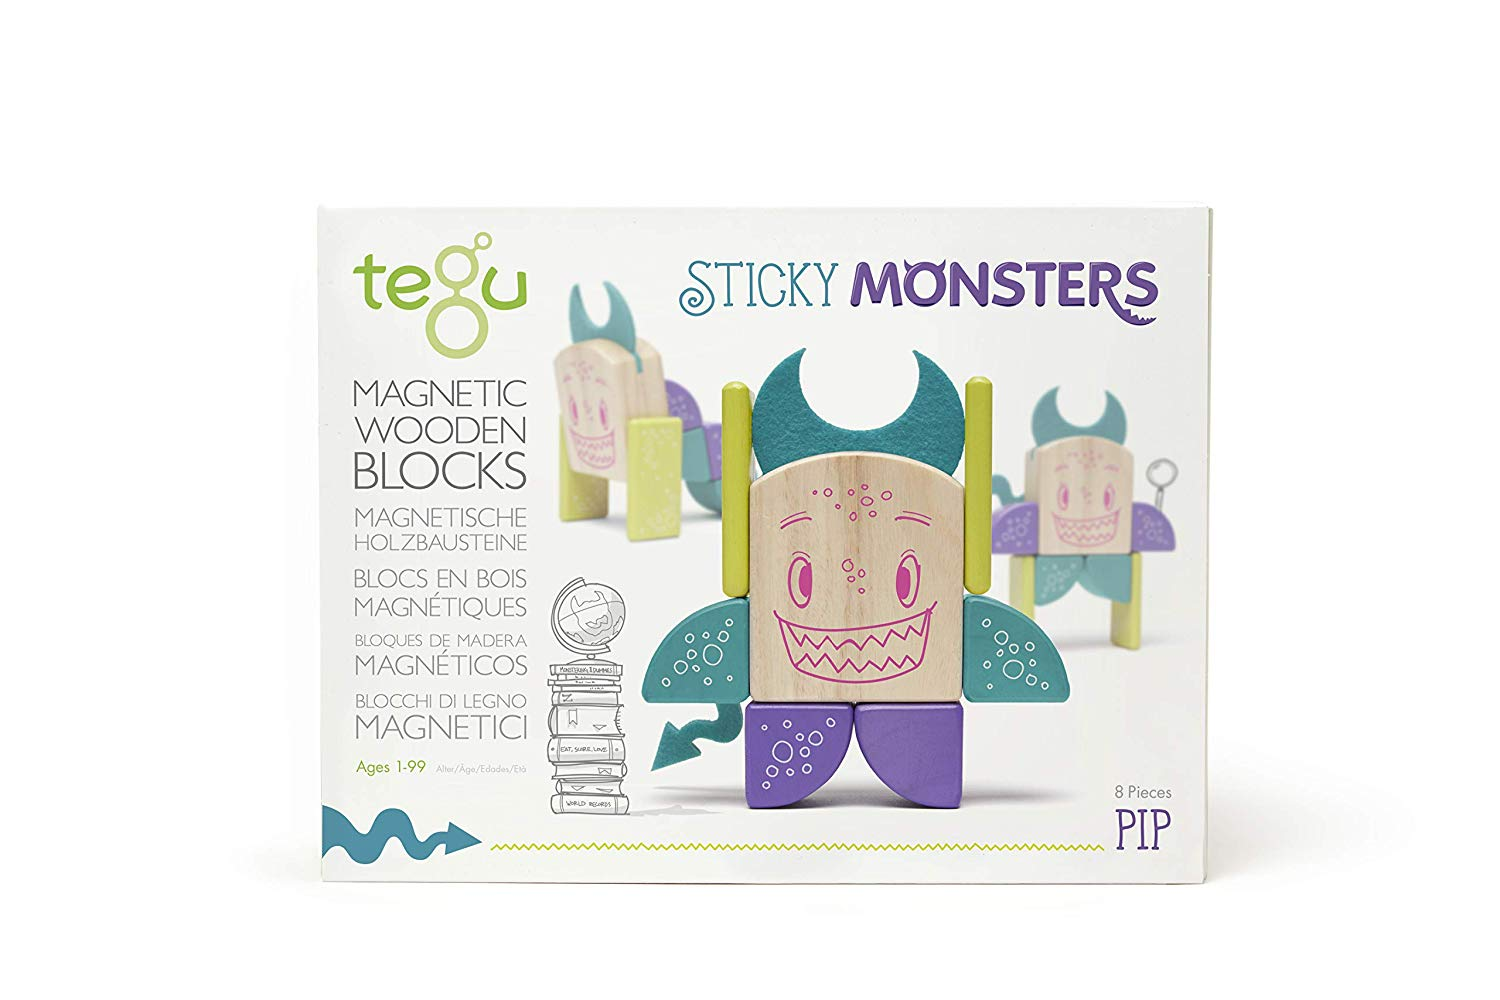 Tegu - Sticky Monsters - Pip - Συσκευασία